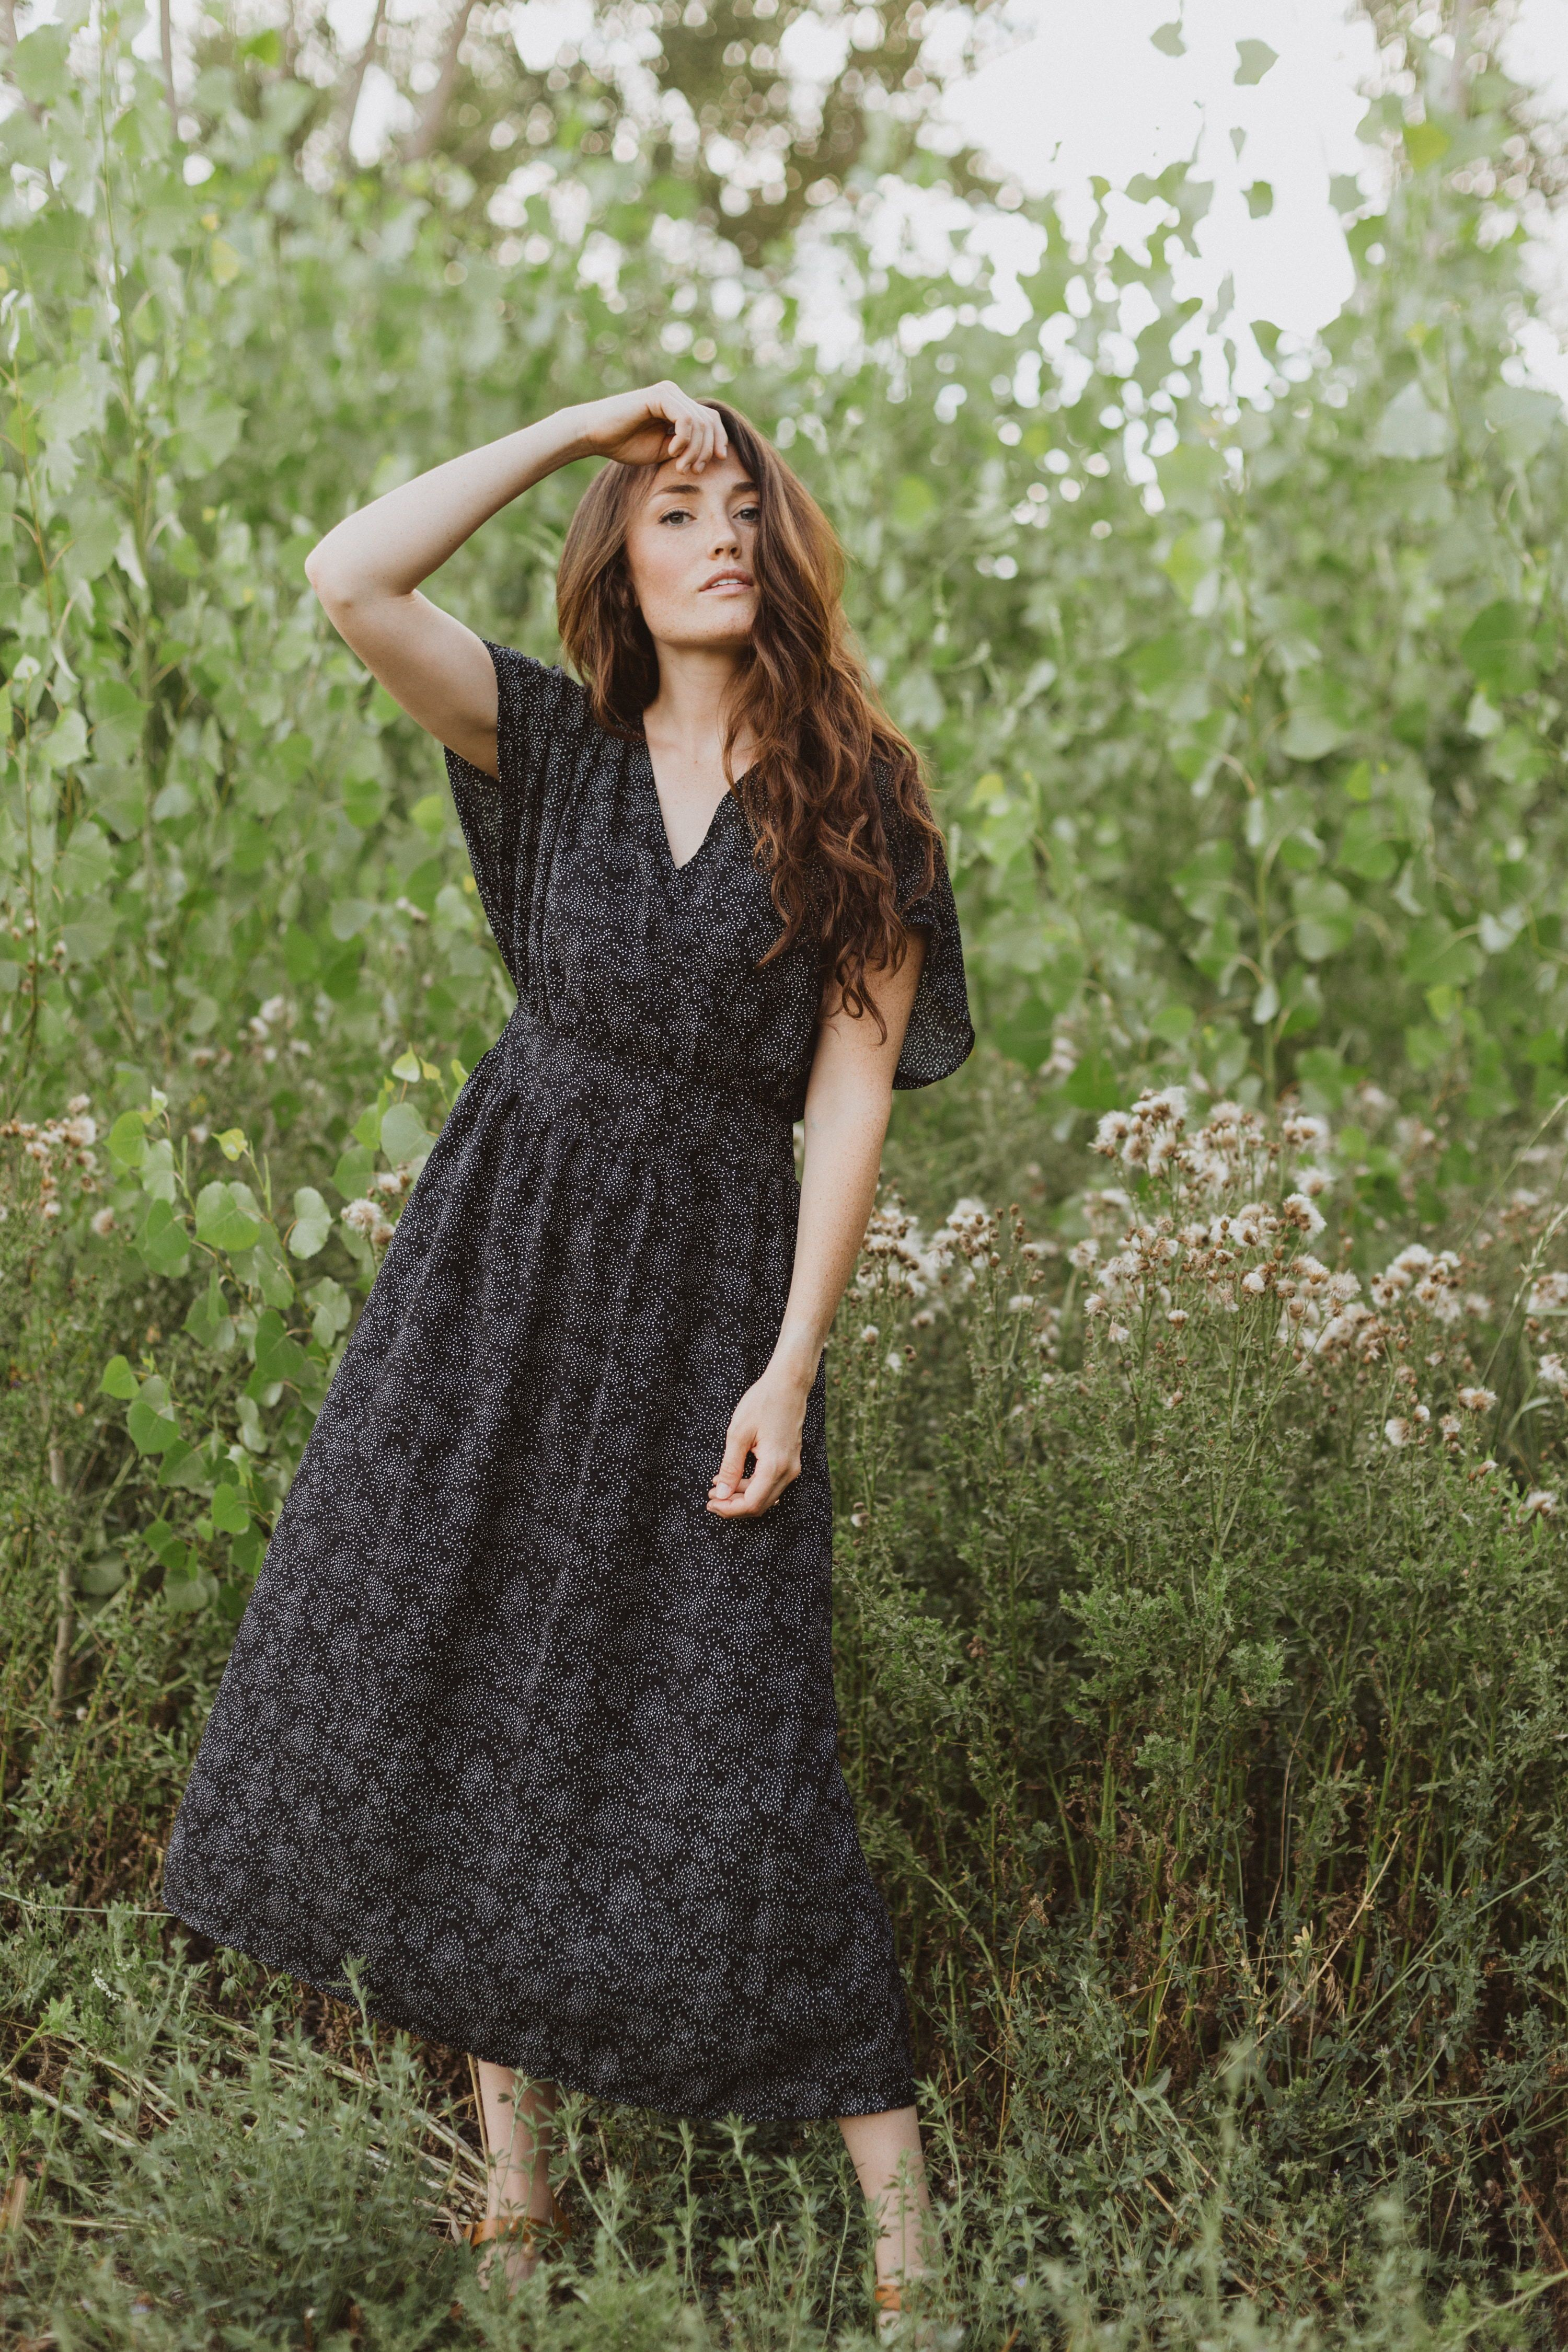 The Amity Dot Wrap Midi Dress Is A Black Dress In A Midi Length With An Intricate Tiny Dot Pattern It Is Our Latest Exclusi Dresses Midi Dress Piper And Scoot [ 4500 x 3000 Pixel ]